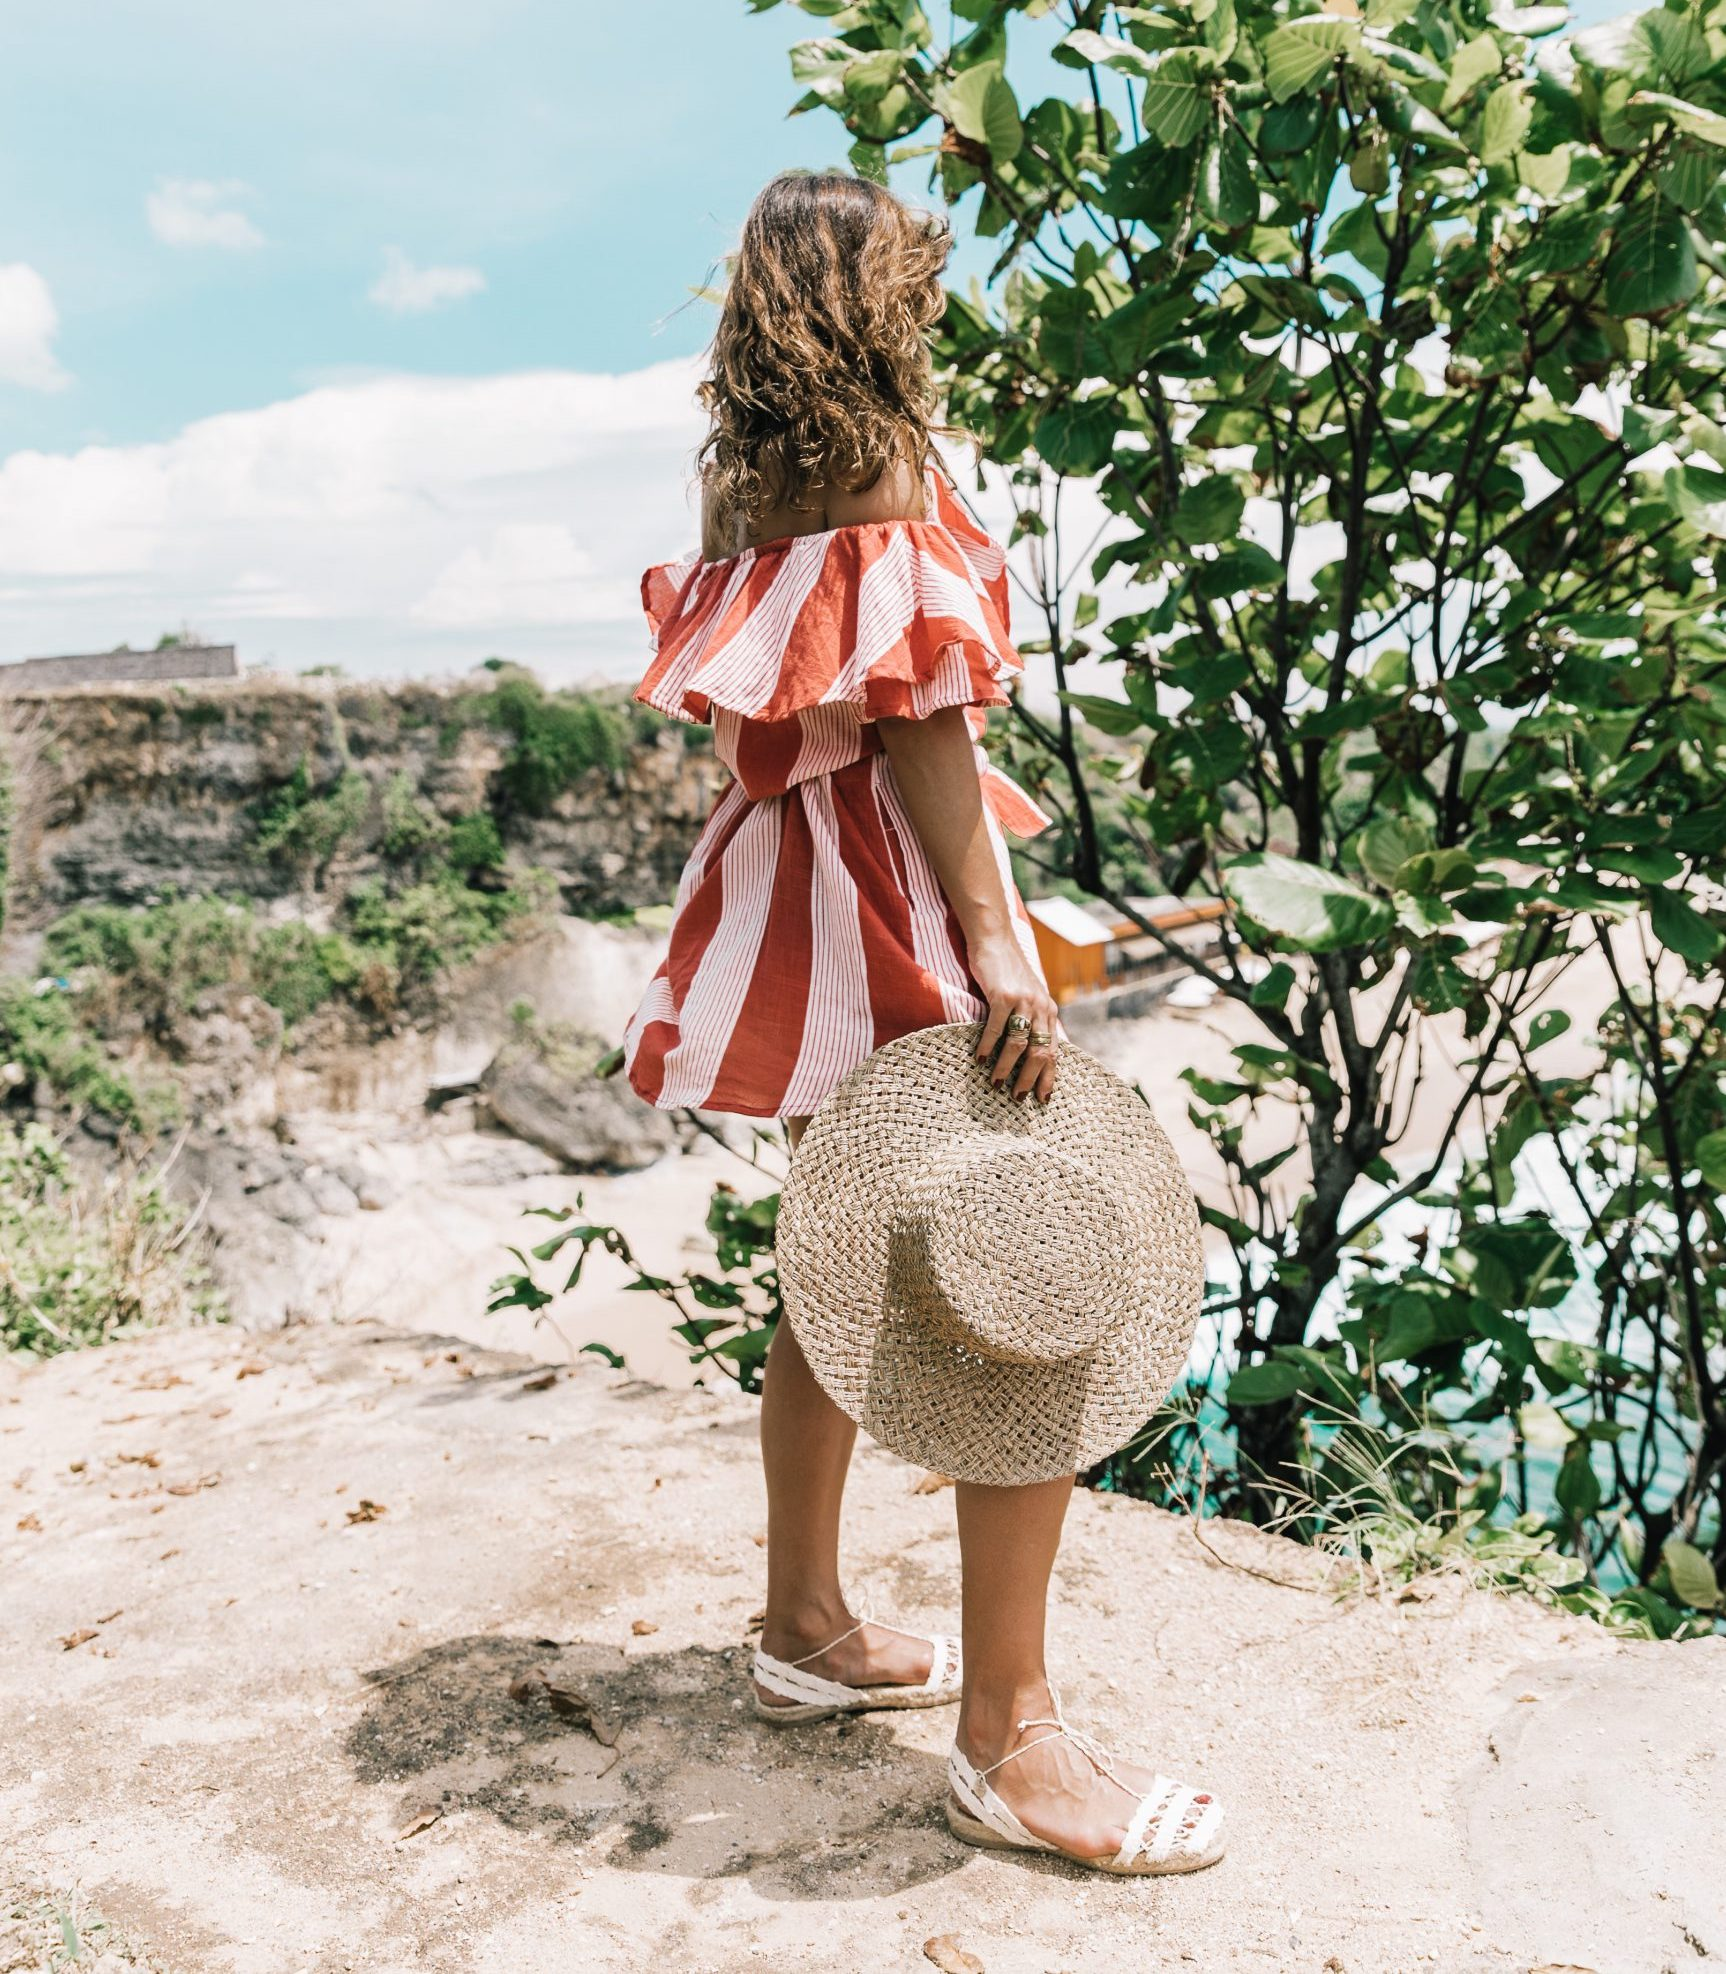 Bali-Uluwatu-Faithfull-Stripped_Dress-Off_The_Shoulders-Red_Dress-Straw_Hat-Espadrilles-52-1800x2700-2